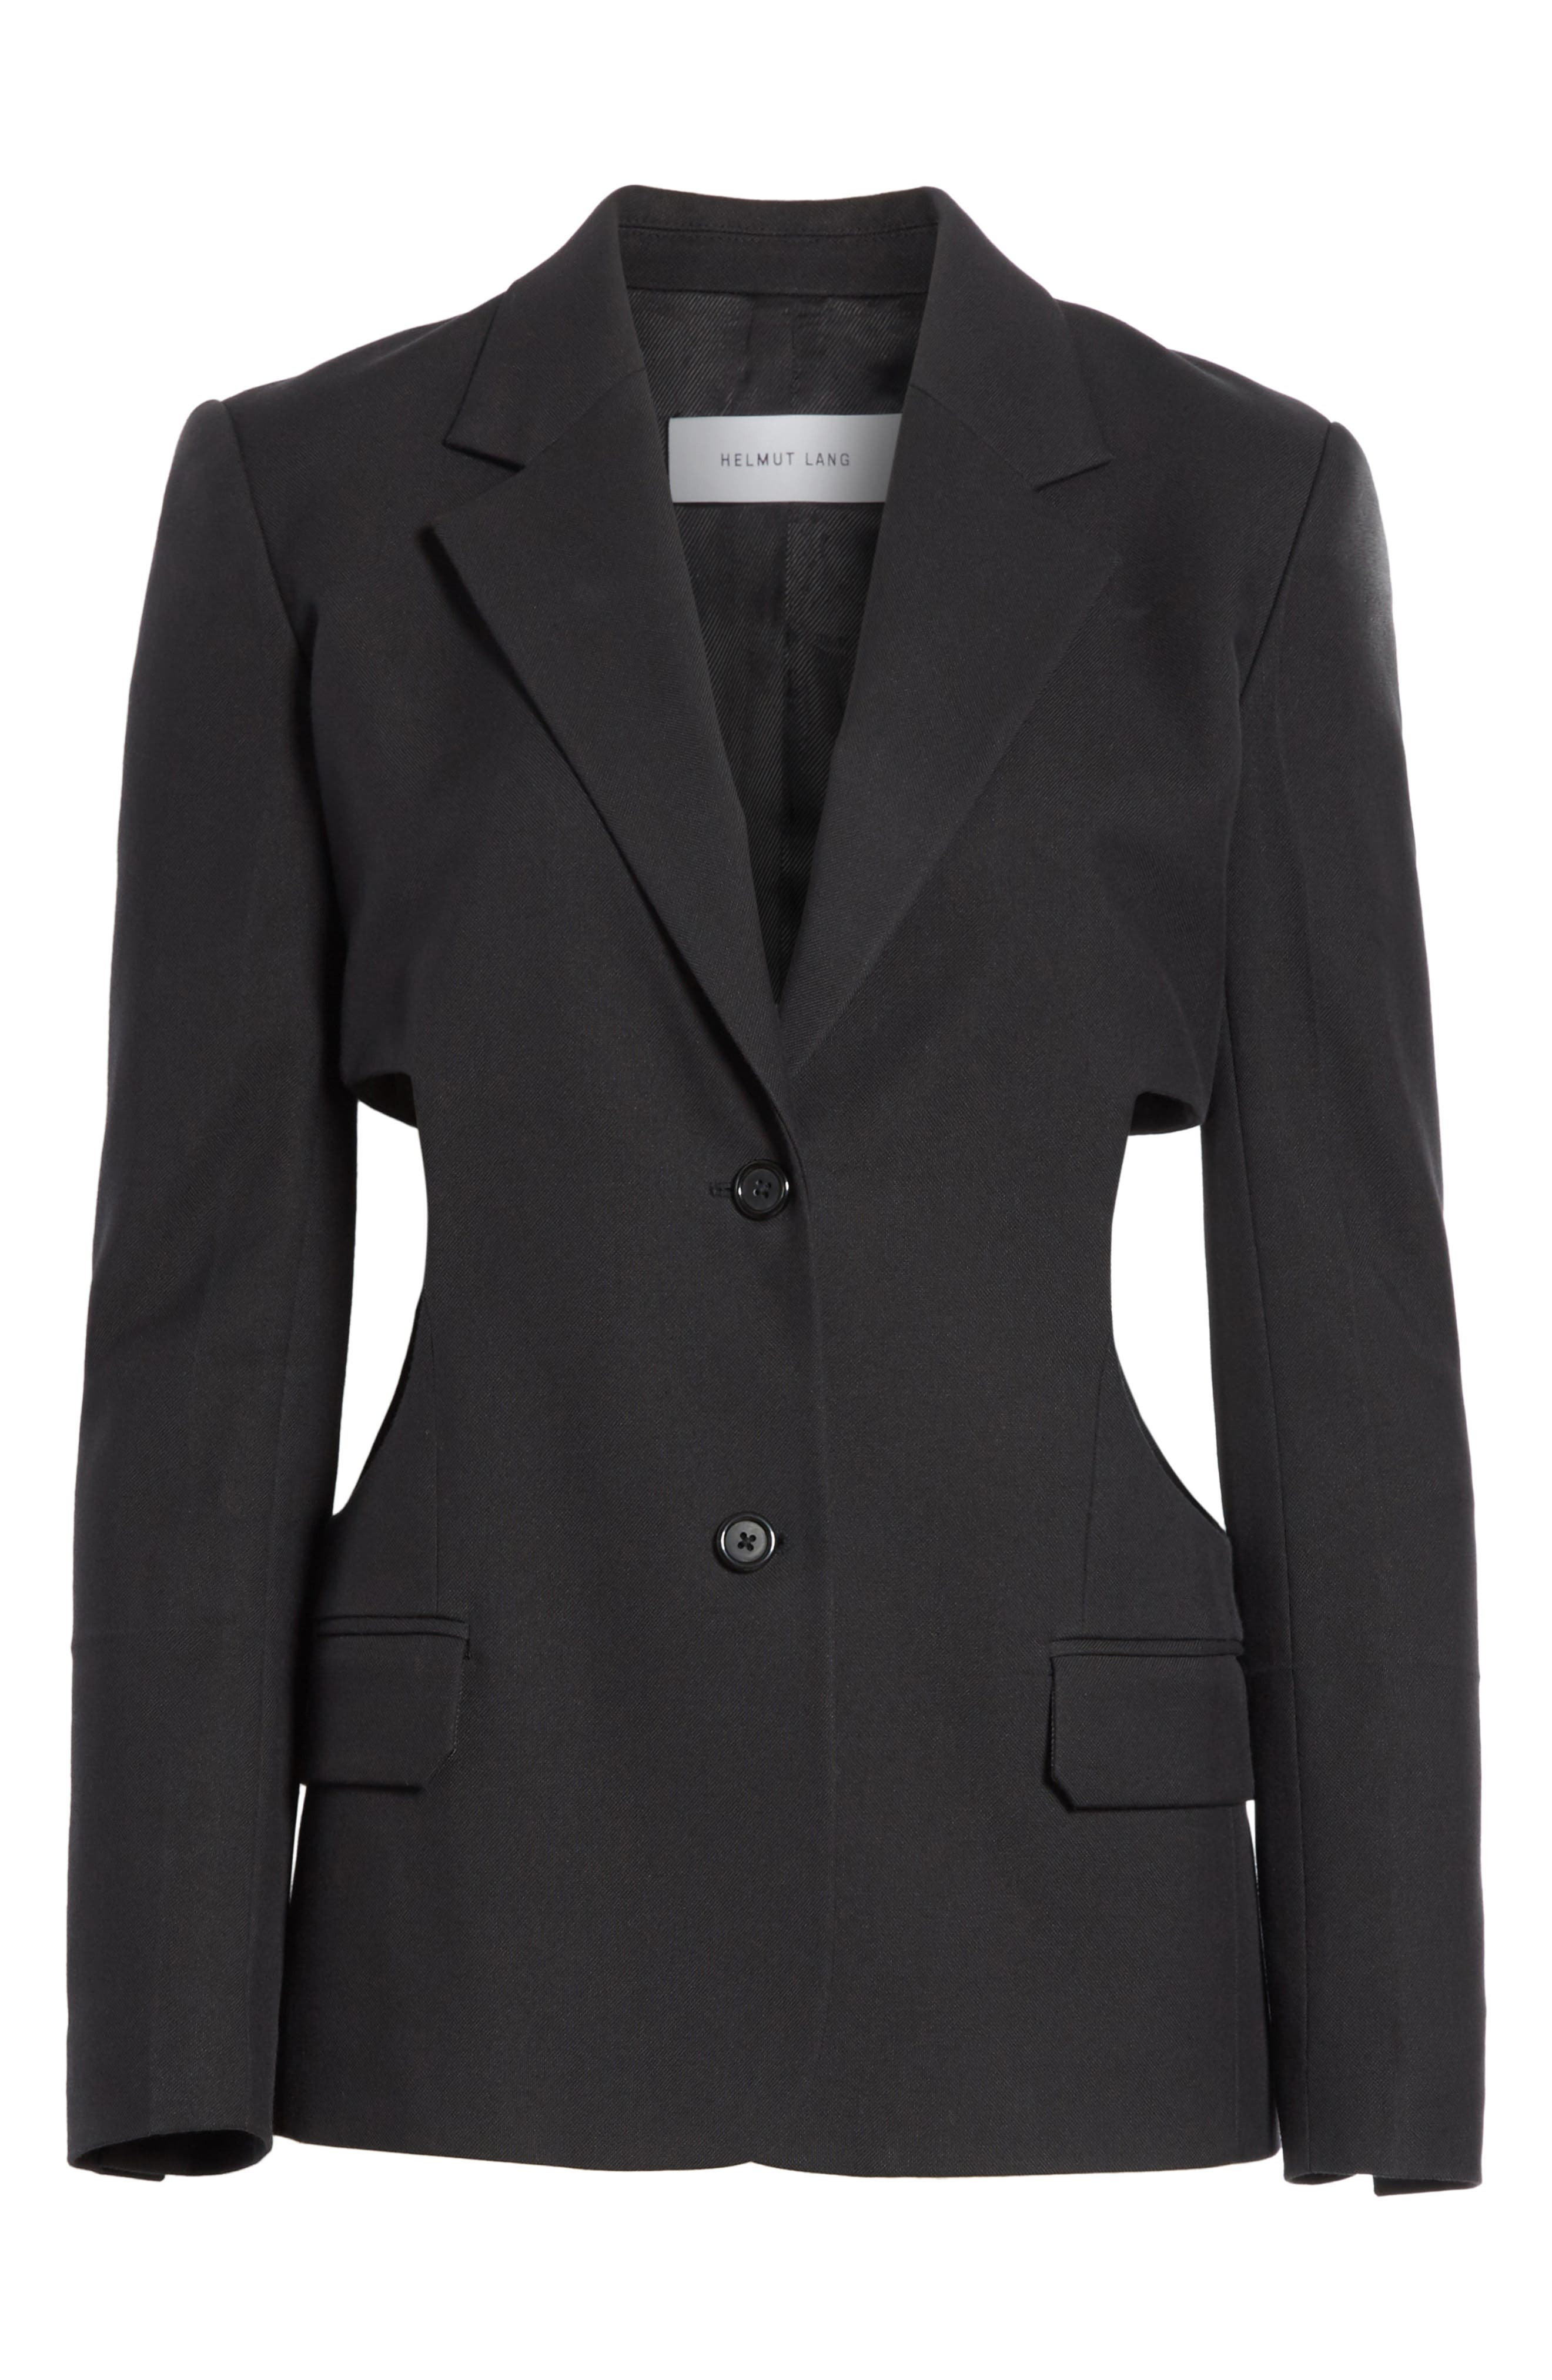 HELMUT LANG,                             Cutout Waist Blazer,                             Alternate thumbnail 5, color,                             001